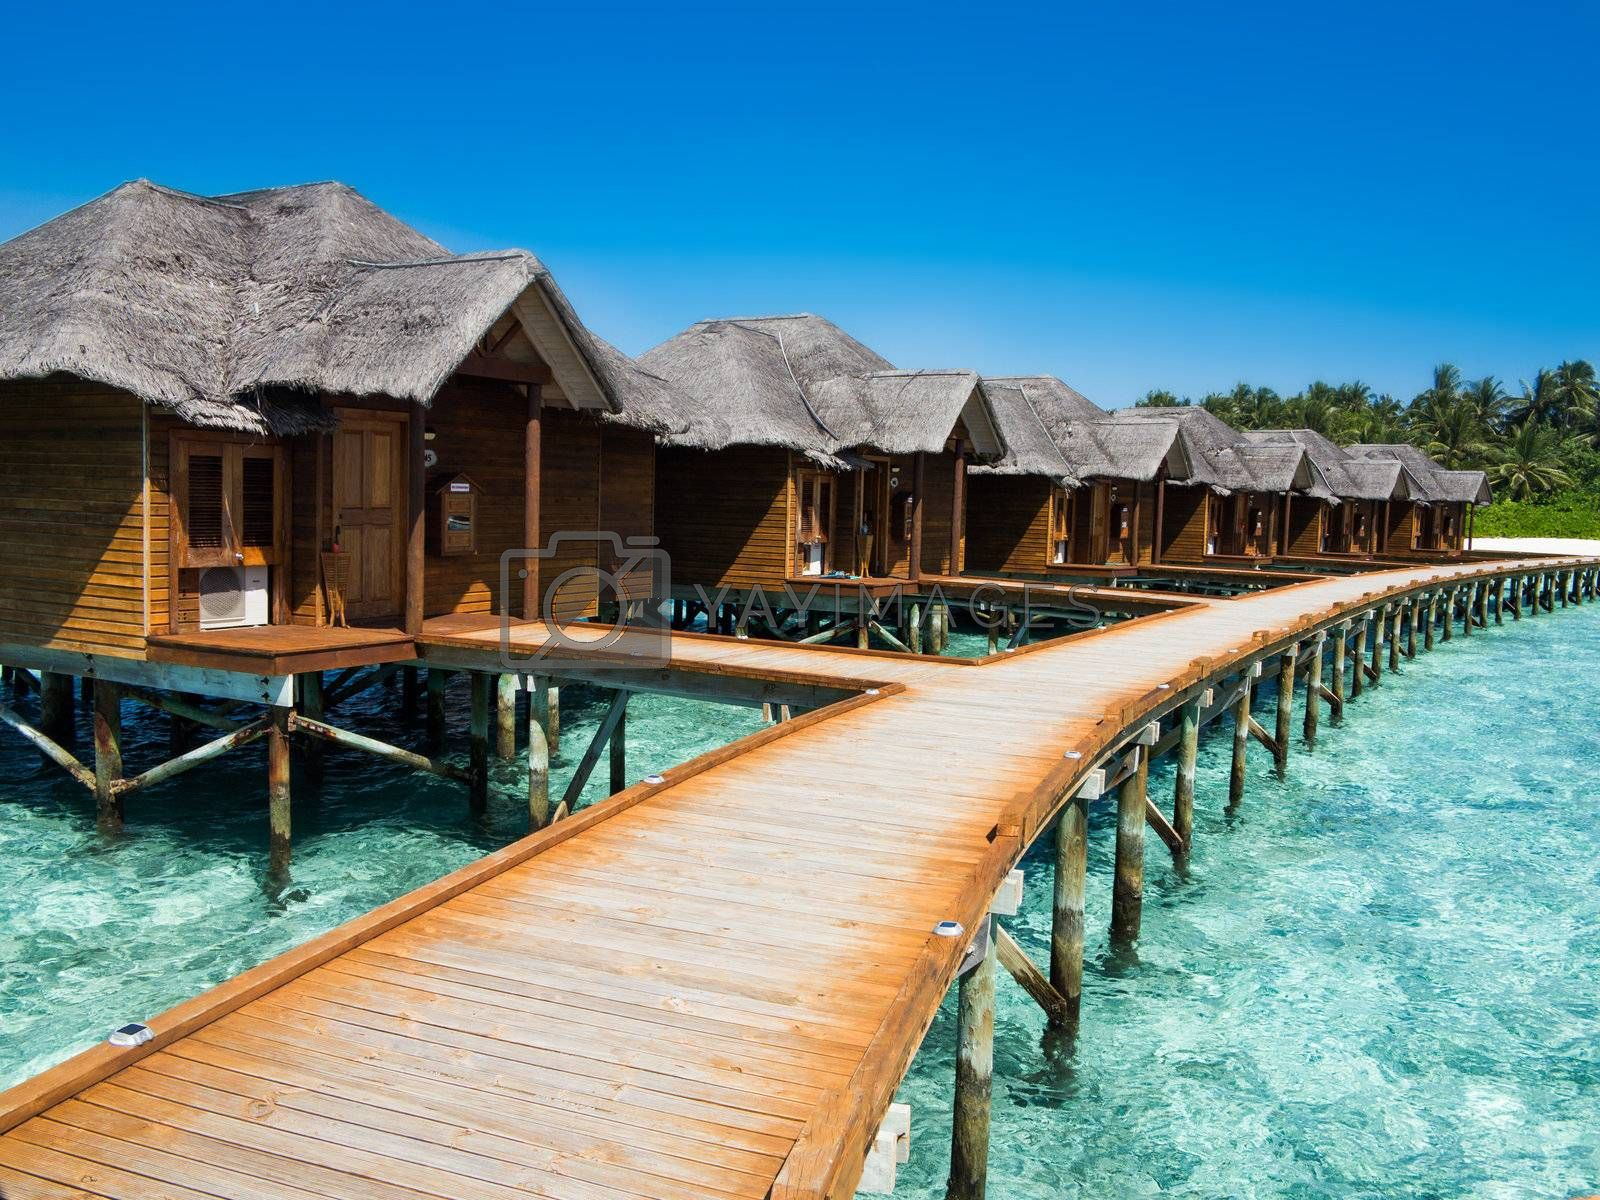 Timber laid walk path leading to cottages over water, maldives.